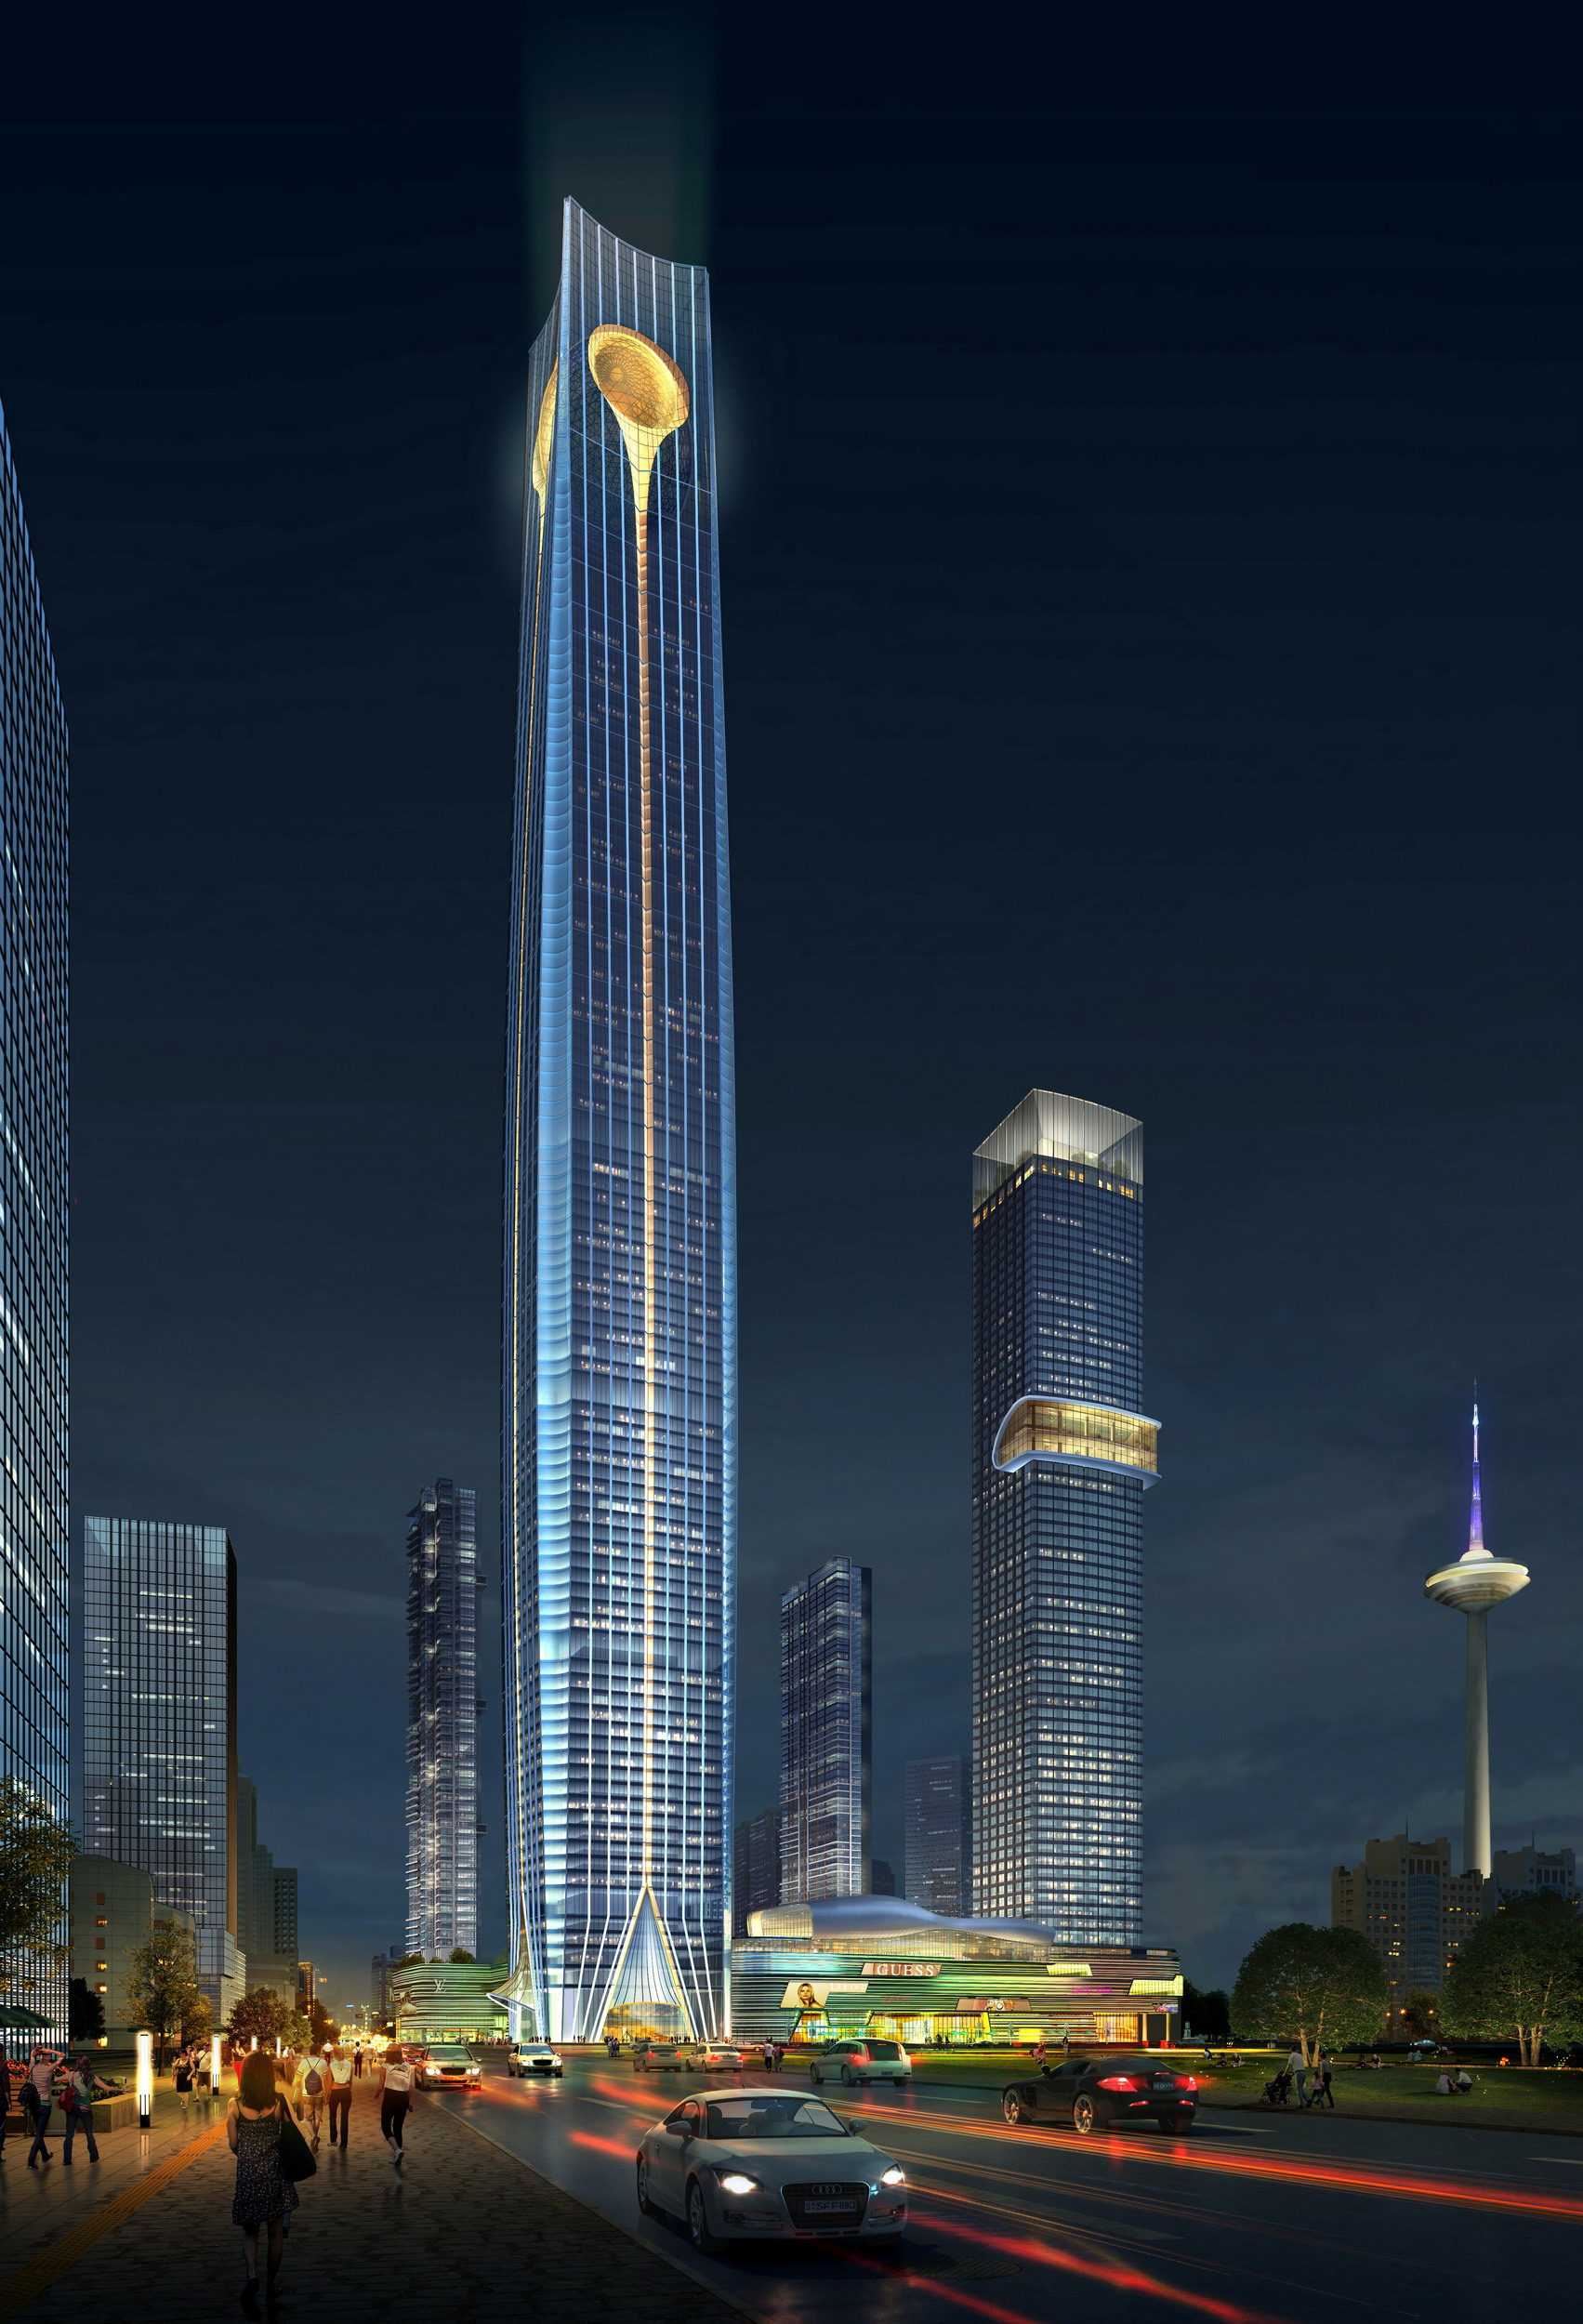 Global Financial Center Tower 1